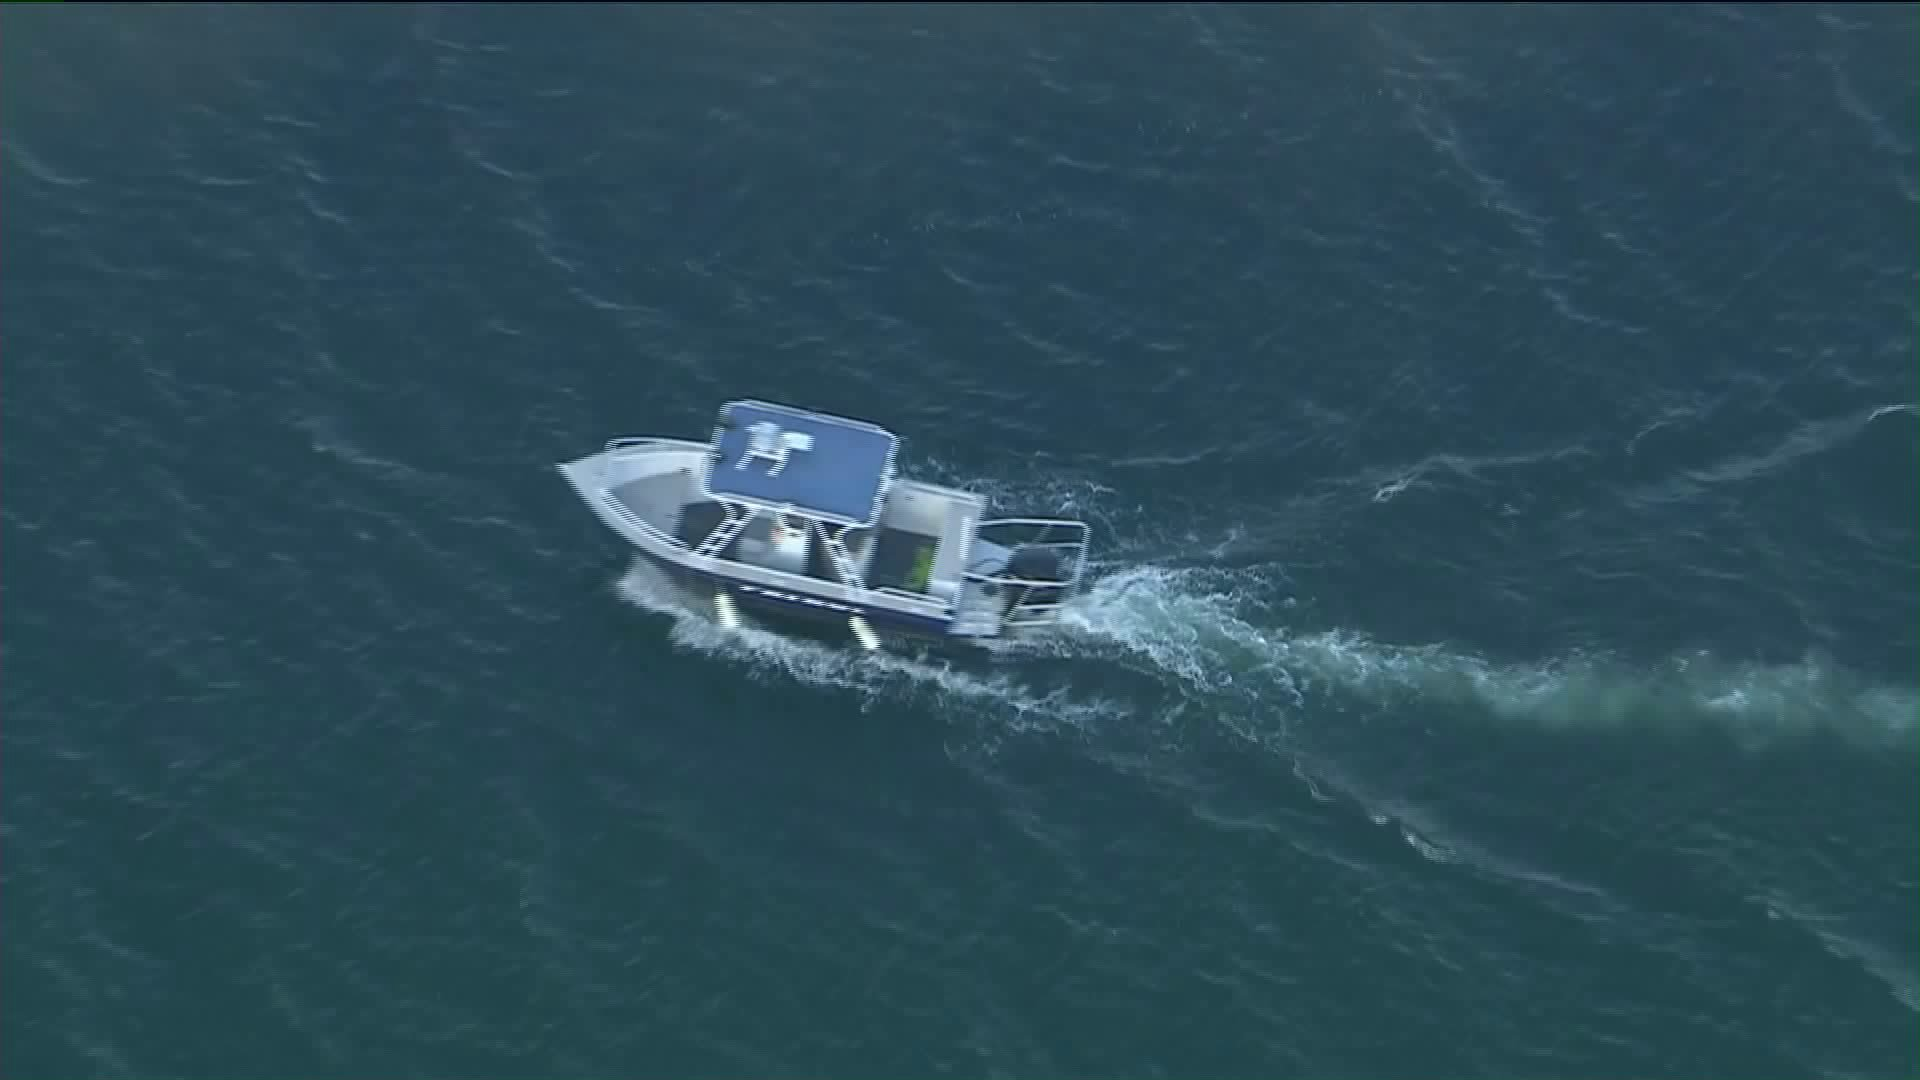 Authorities were searching for a possible drowning victim after a 3-year-old was found on a boat alone in Lake Piru. (KTLA)